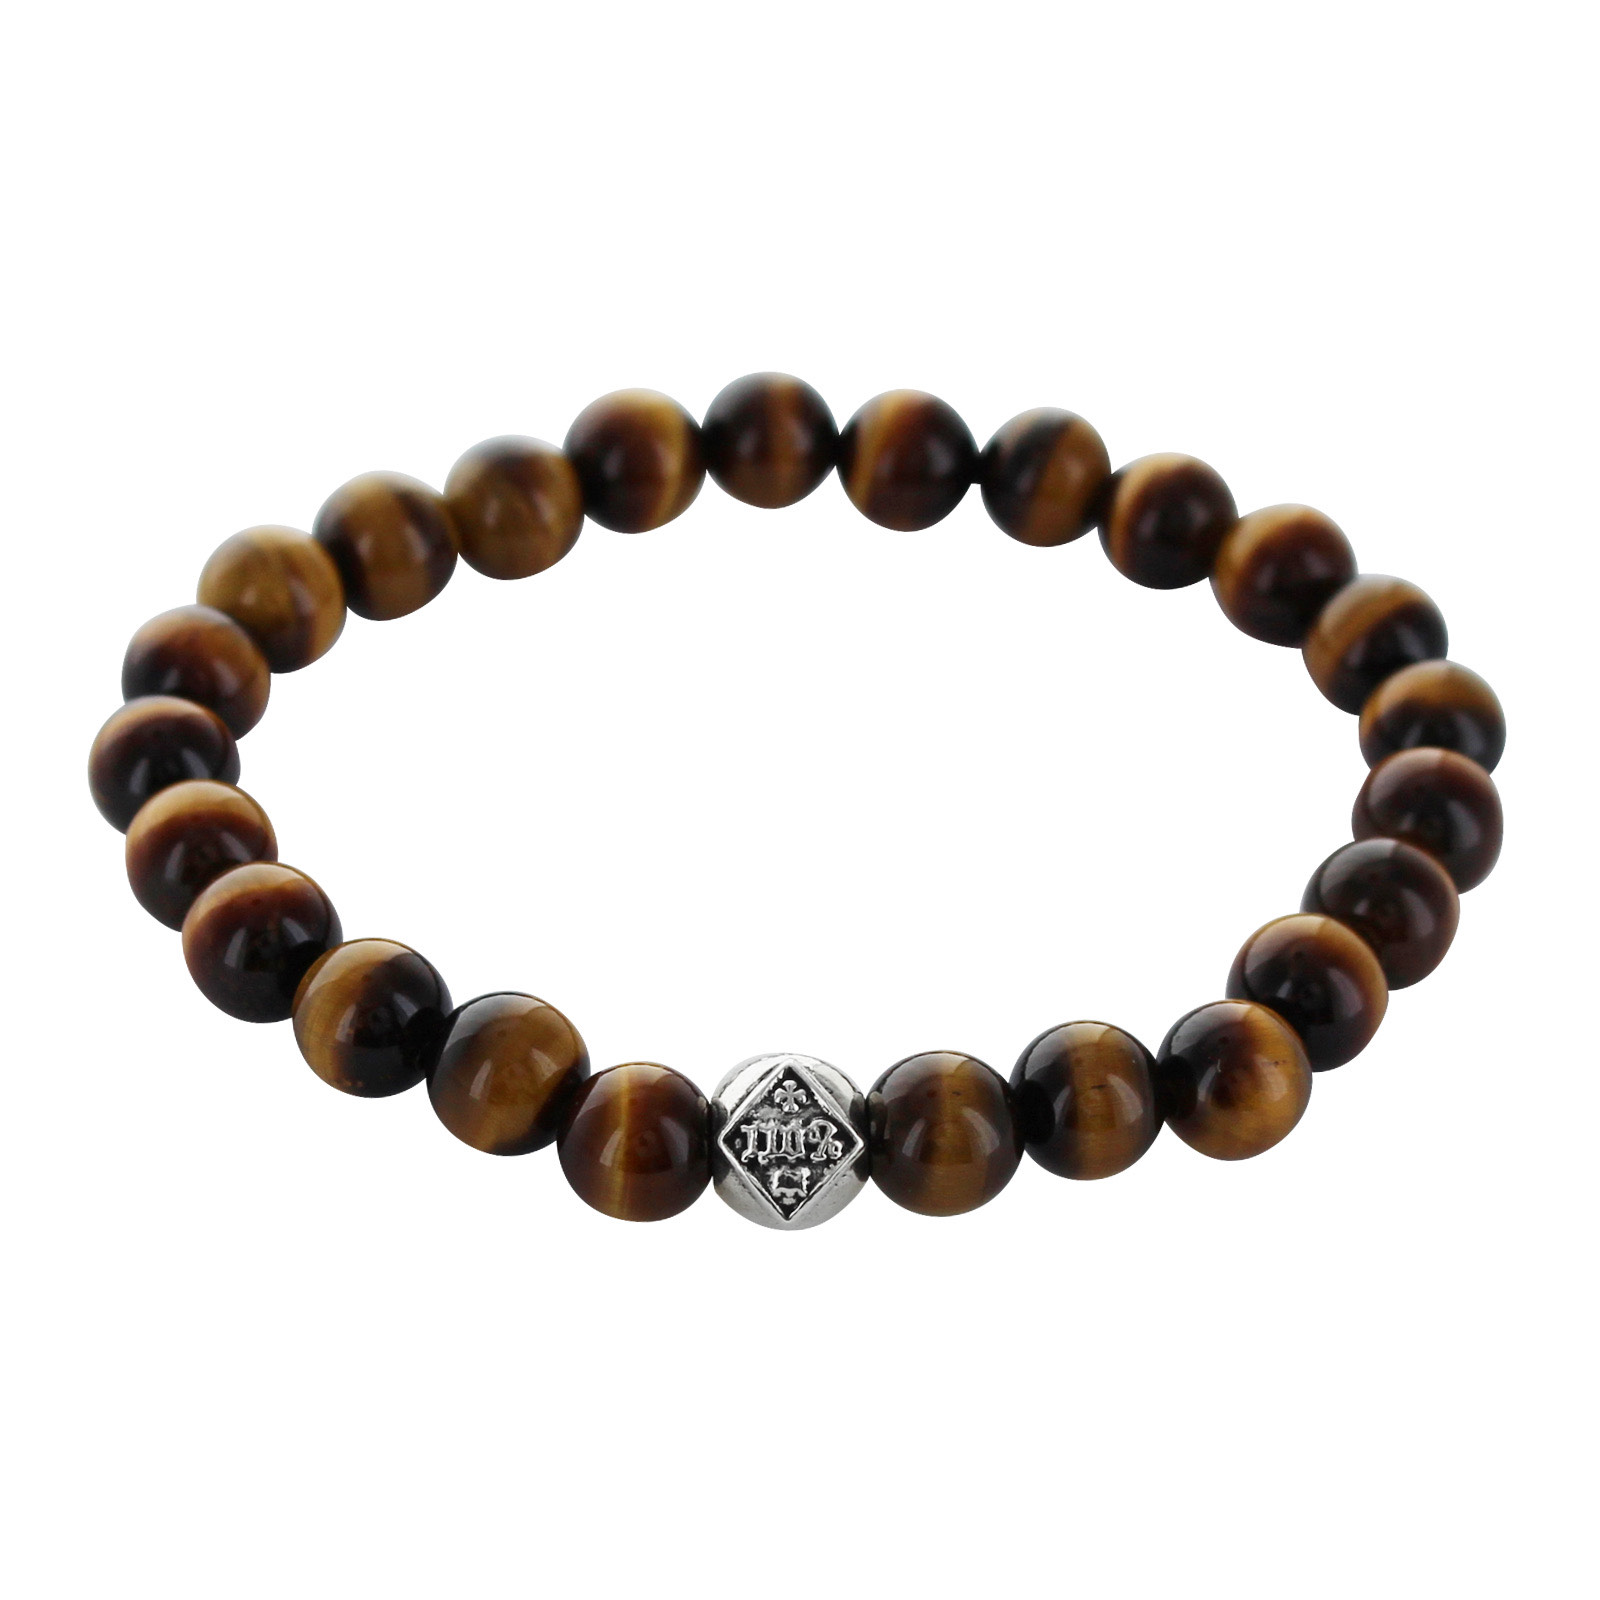 TRAVIS WALKER   STONE WITH 110% BEAD BRACELET (8mm TIGER EYE)